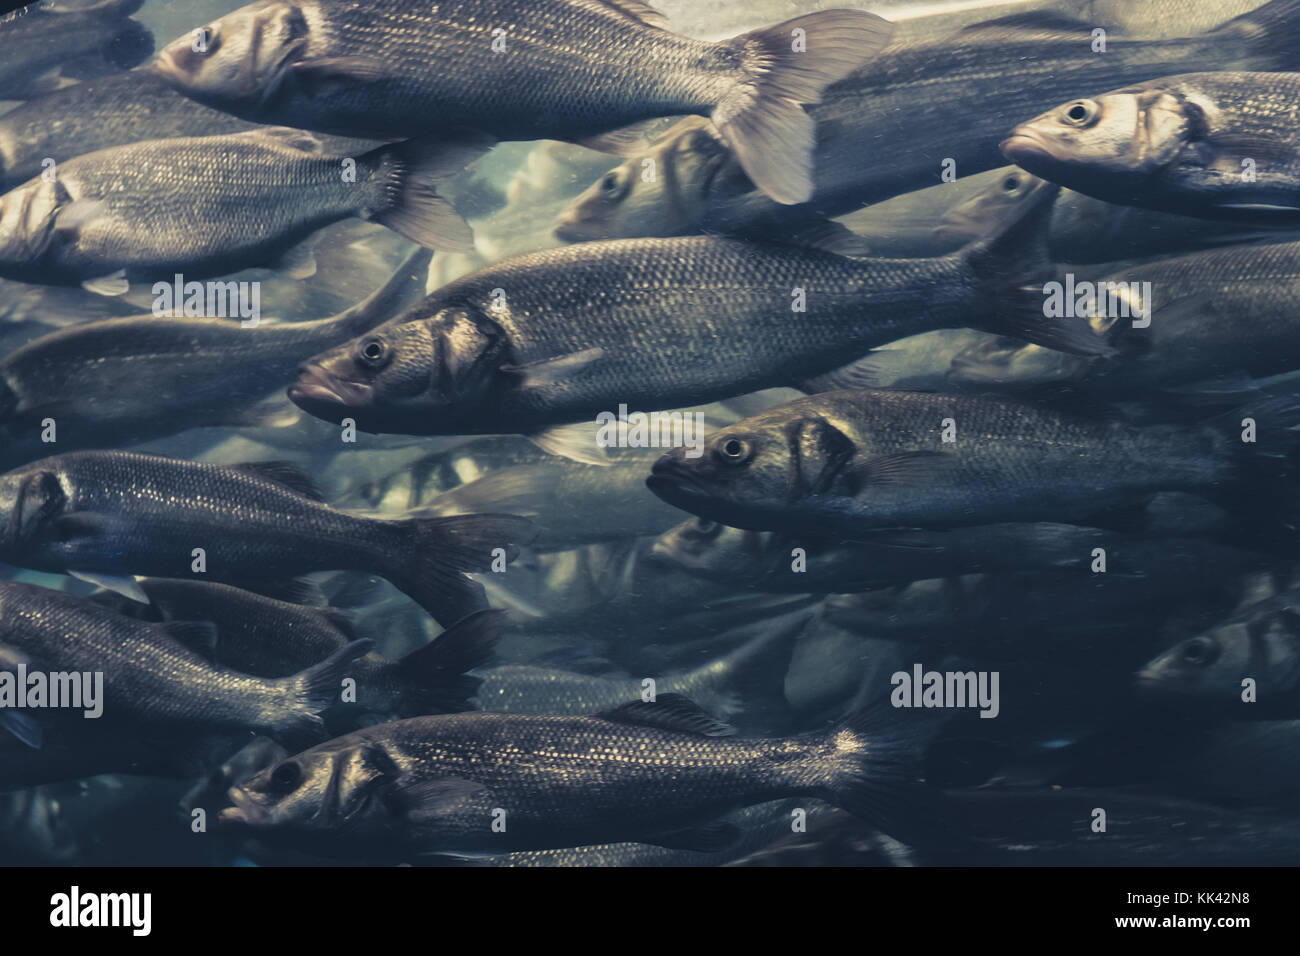 fish swarm, many fishes swimming in one direction - Stock Image